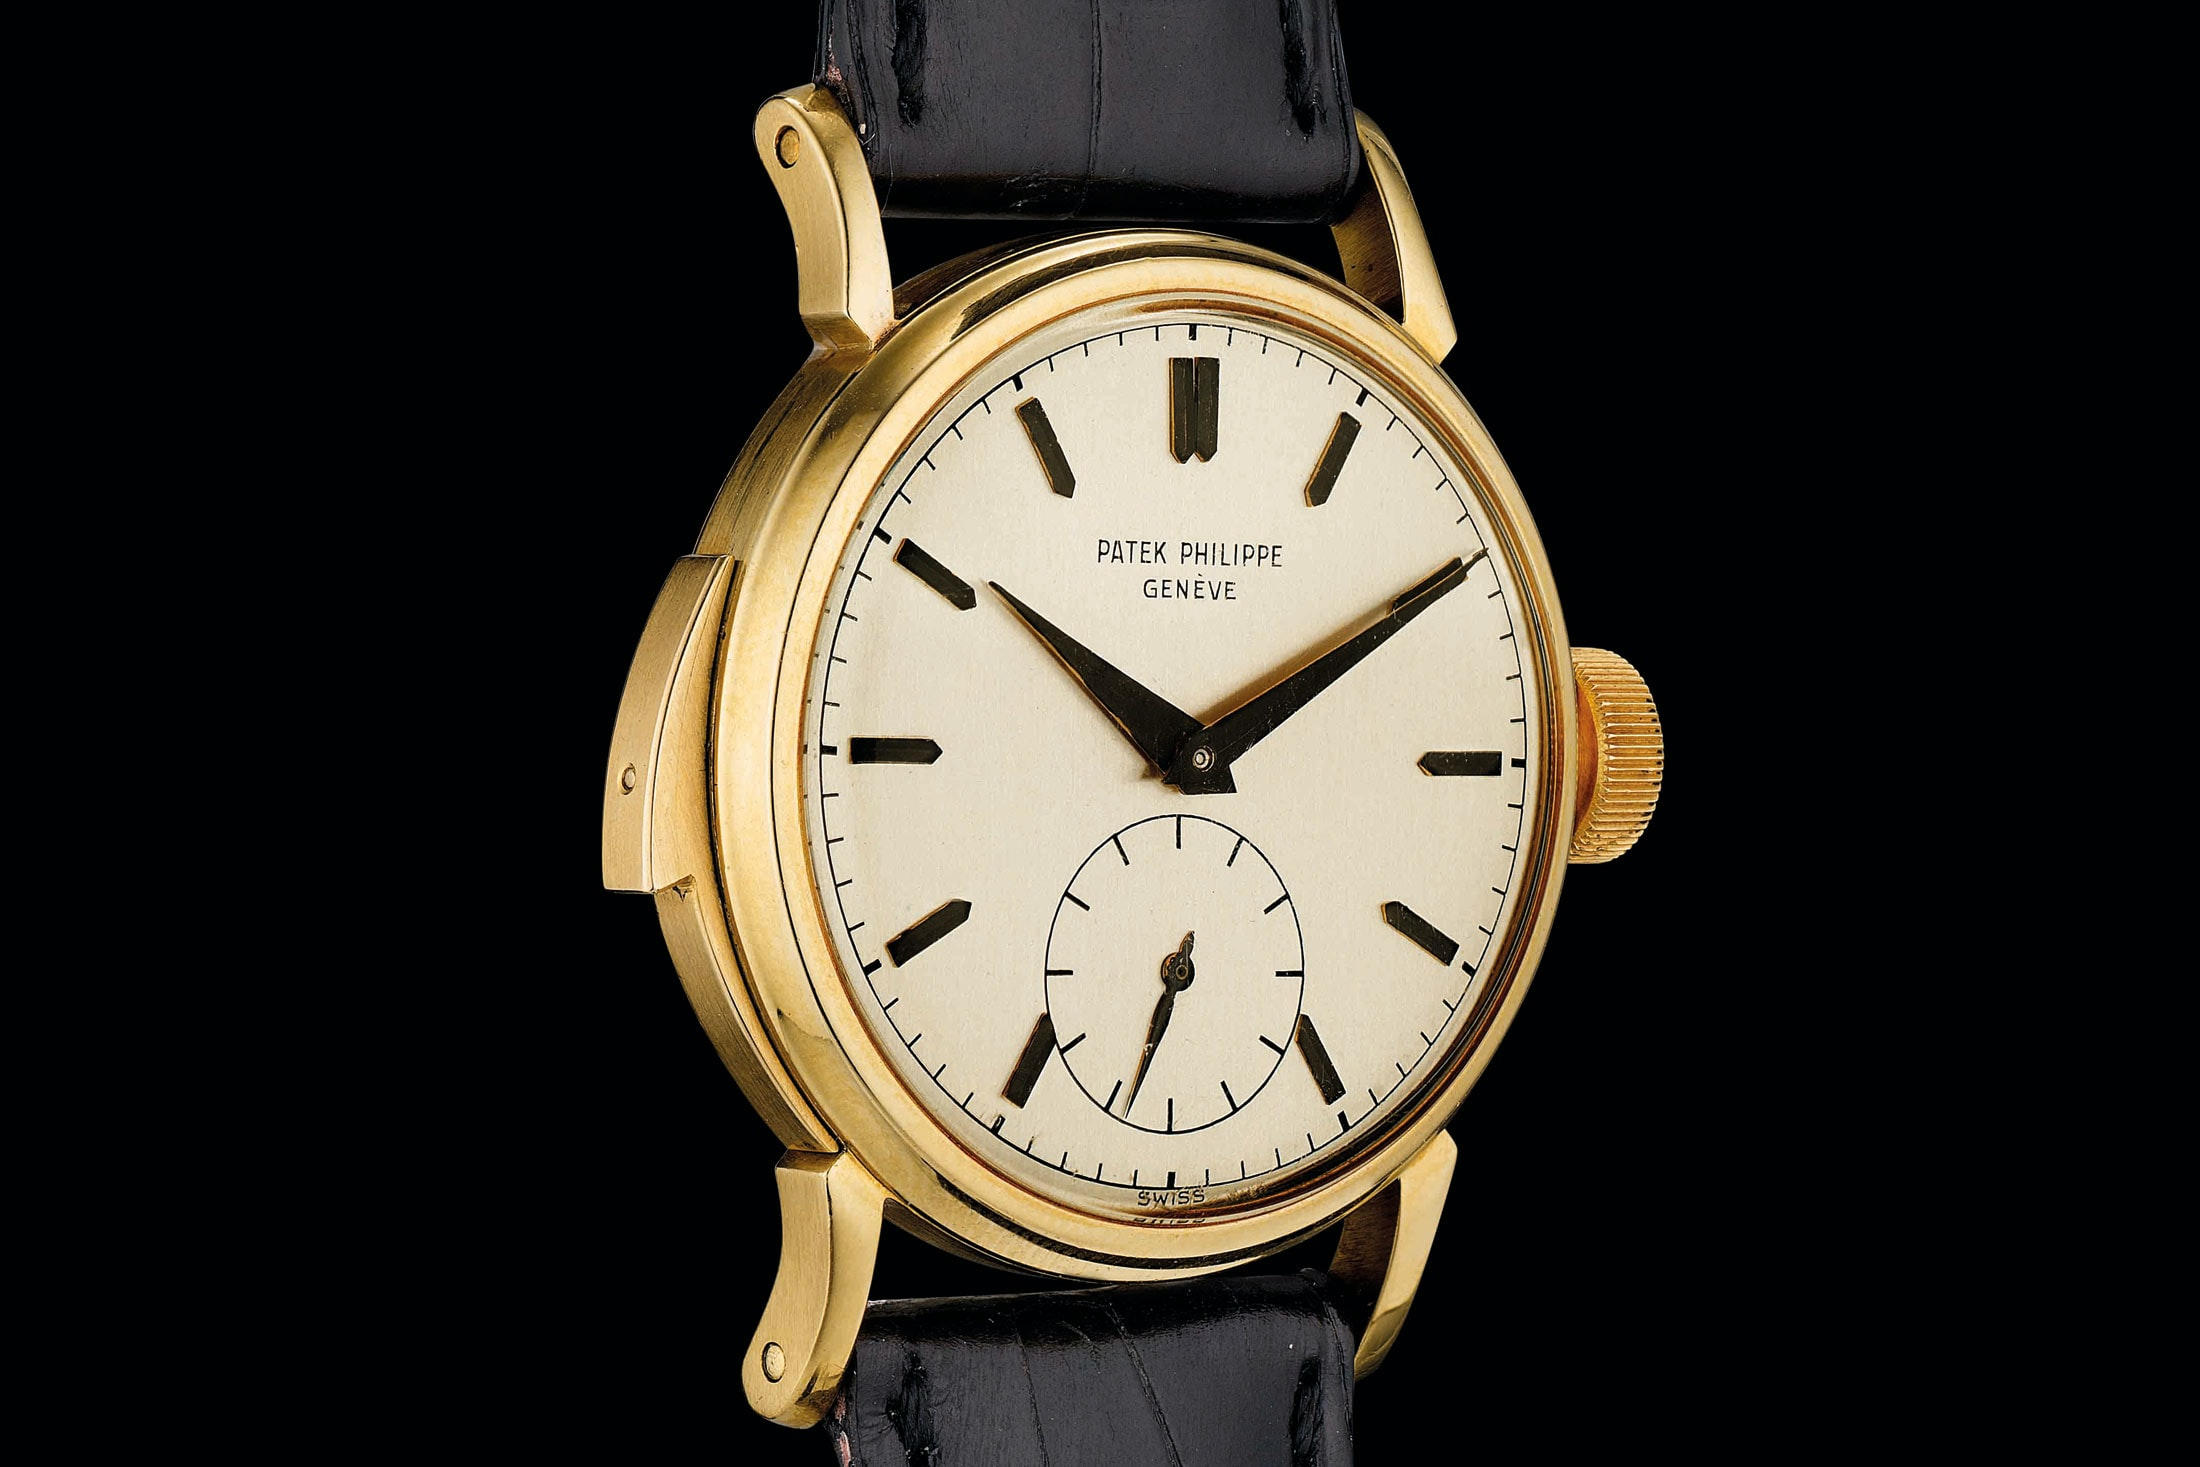 patek philippe 2419 minute repeater phillips Found: A Pair Of Strikingly Similar Patek Philippe Minute Repeaters That Share More Than Just (Good) Looks Found: A Pair Of Strikingly Similar Patek Philippe Minute Repeaters That Share More Than Just (Good) Looks patek1